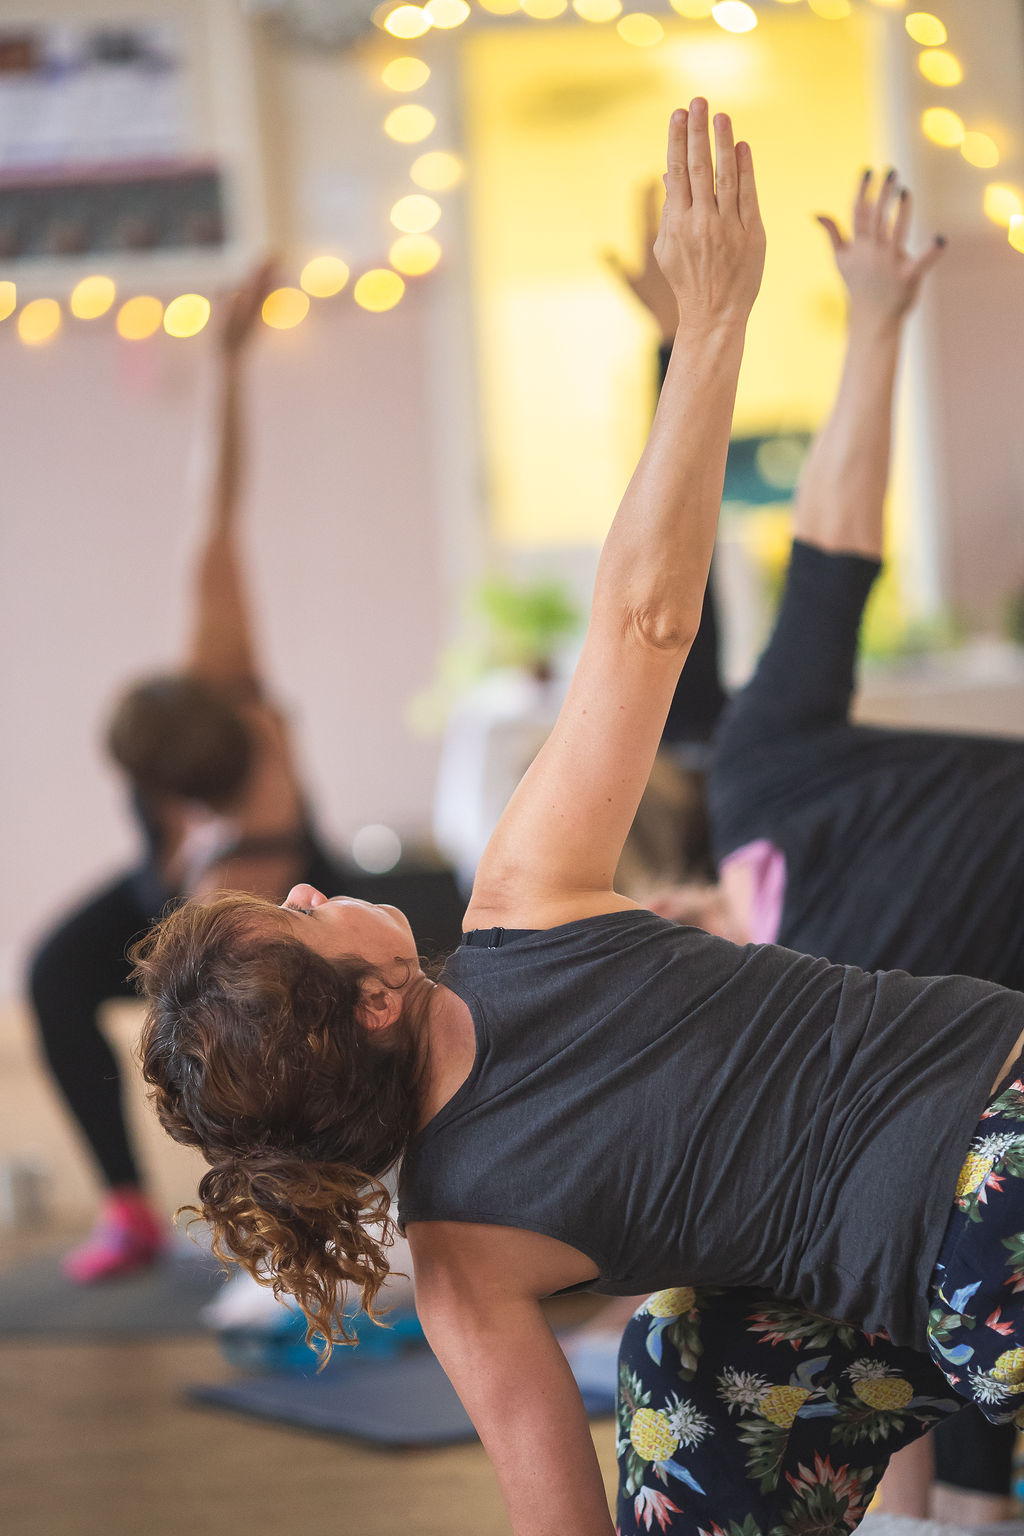 Yoga: Wellness Day - Getting ready for 2019.